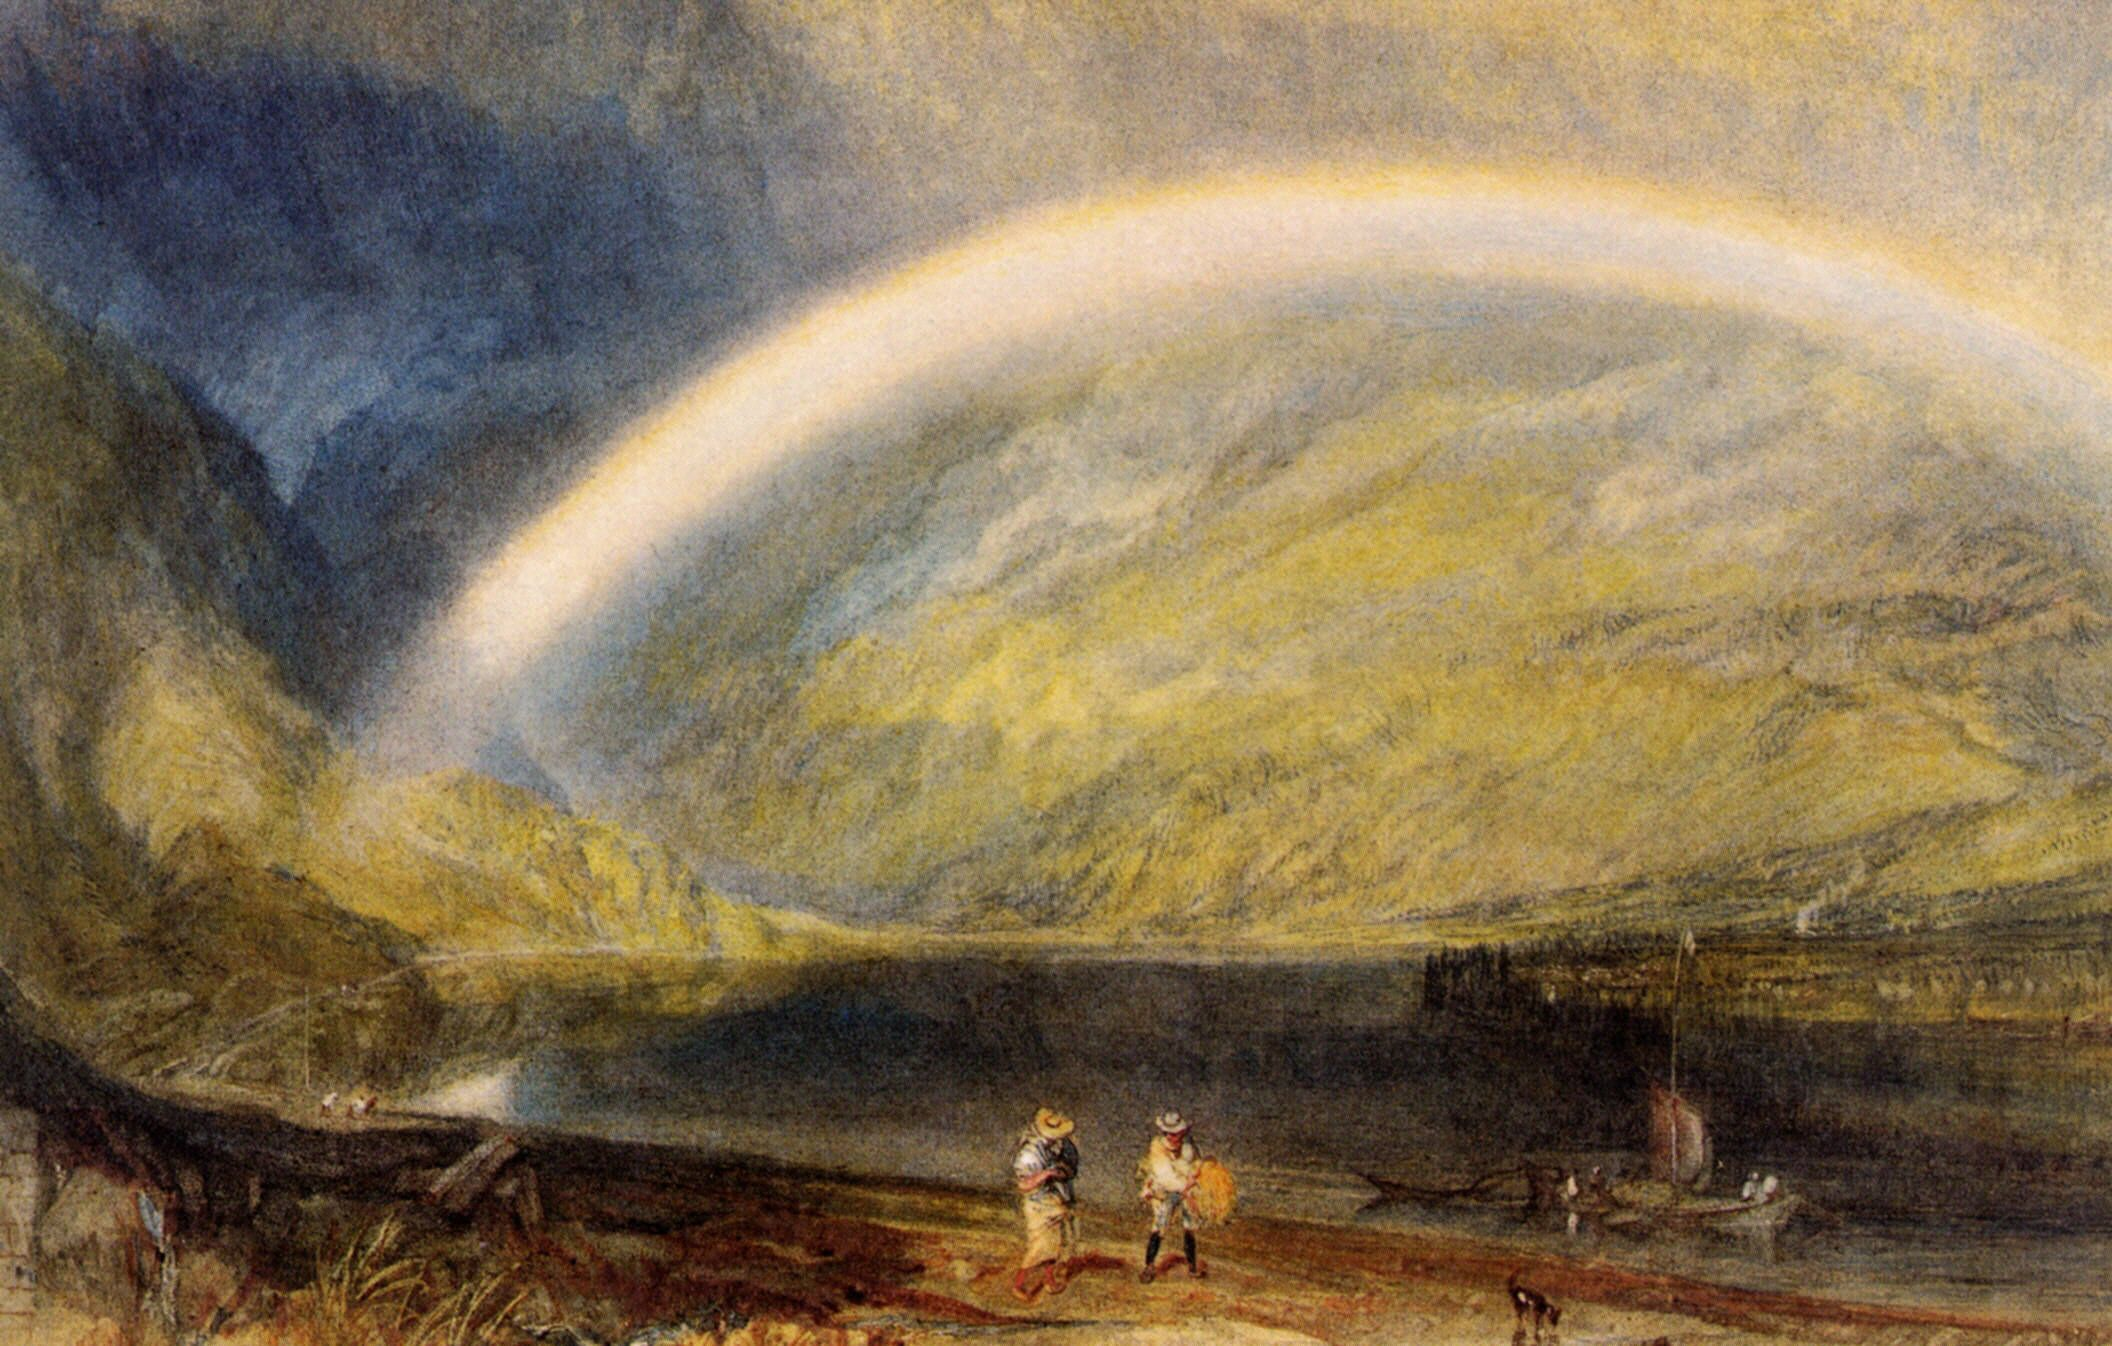 Rainbow William Turner Never Seen This One Would Love To What